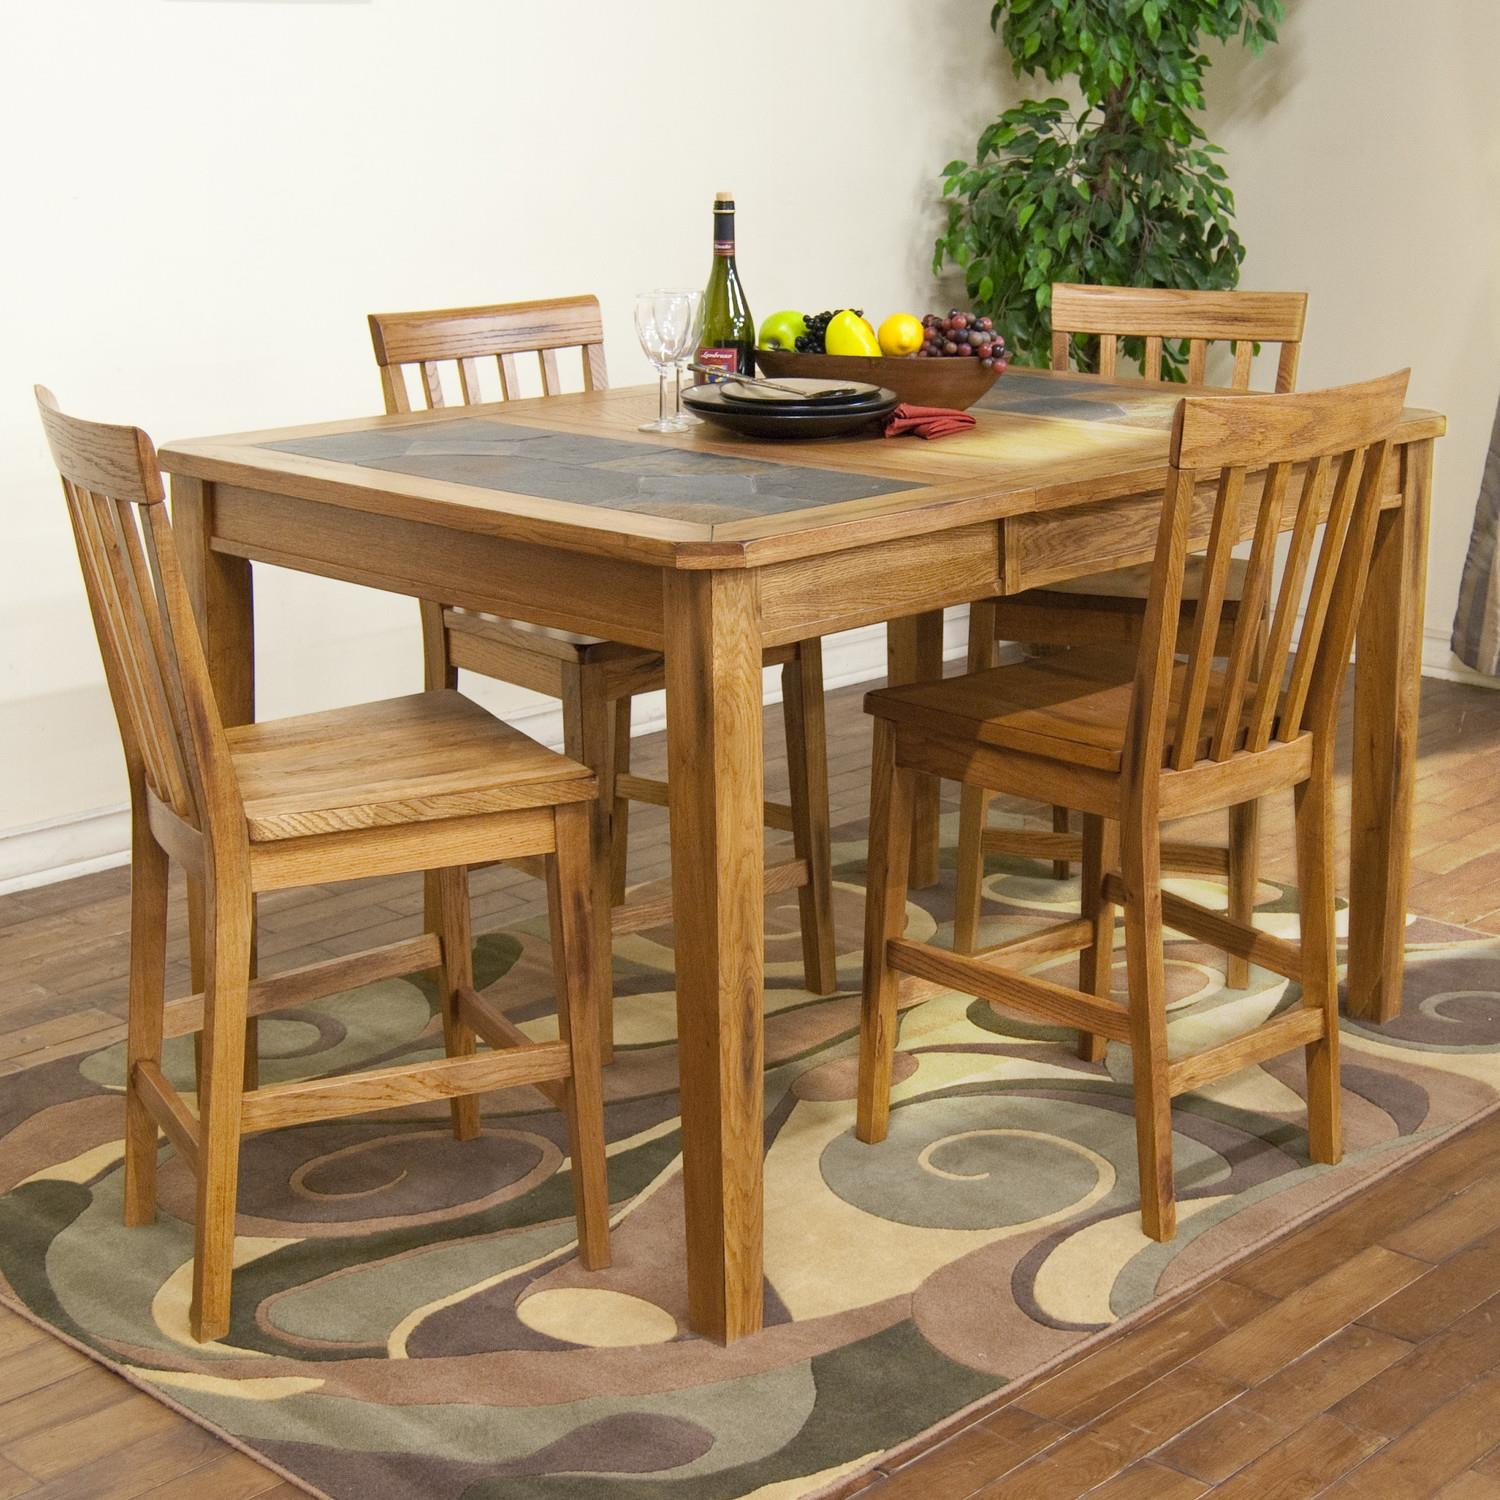 Slate Dining Room Table: Sunny Designs Sedona Counter Height Extension Table W